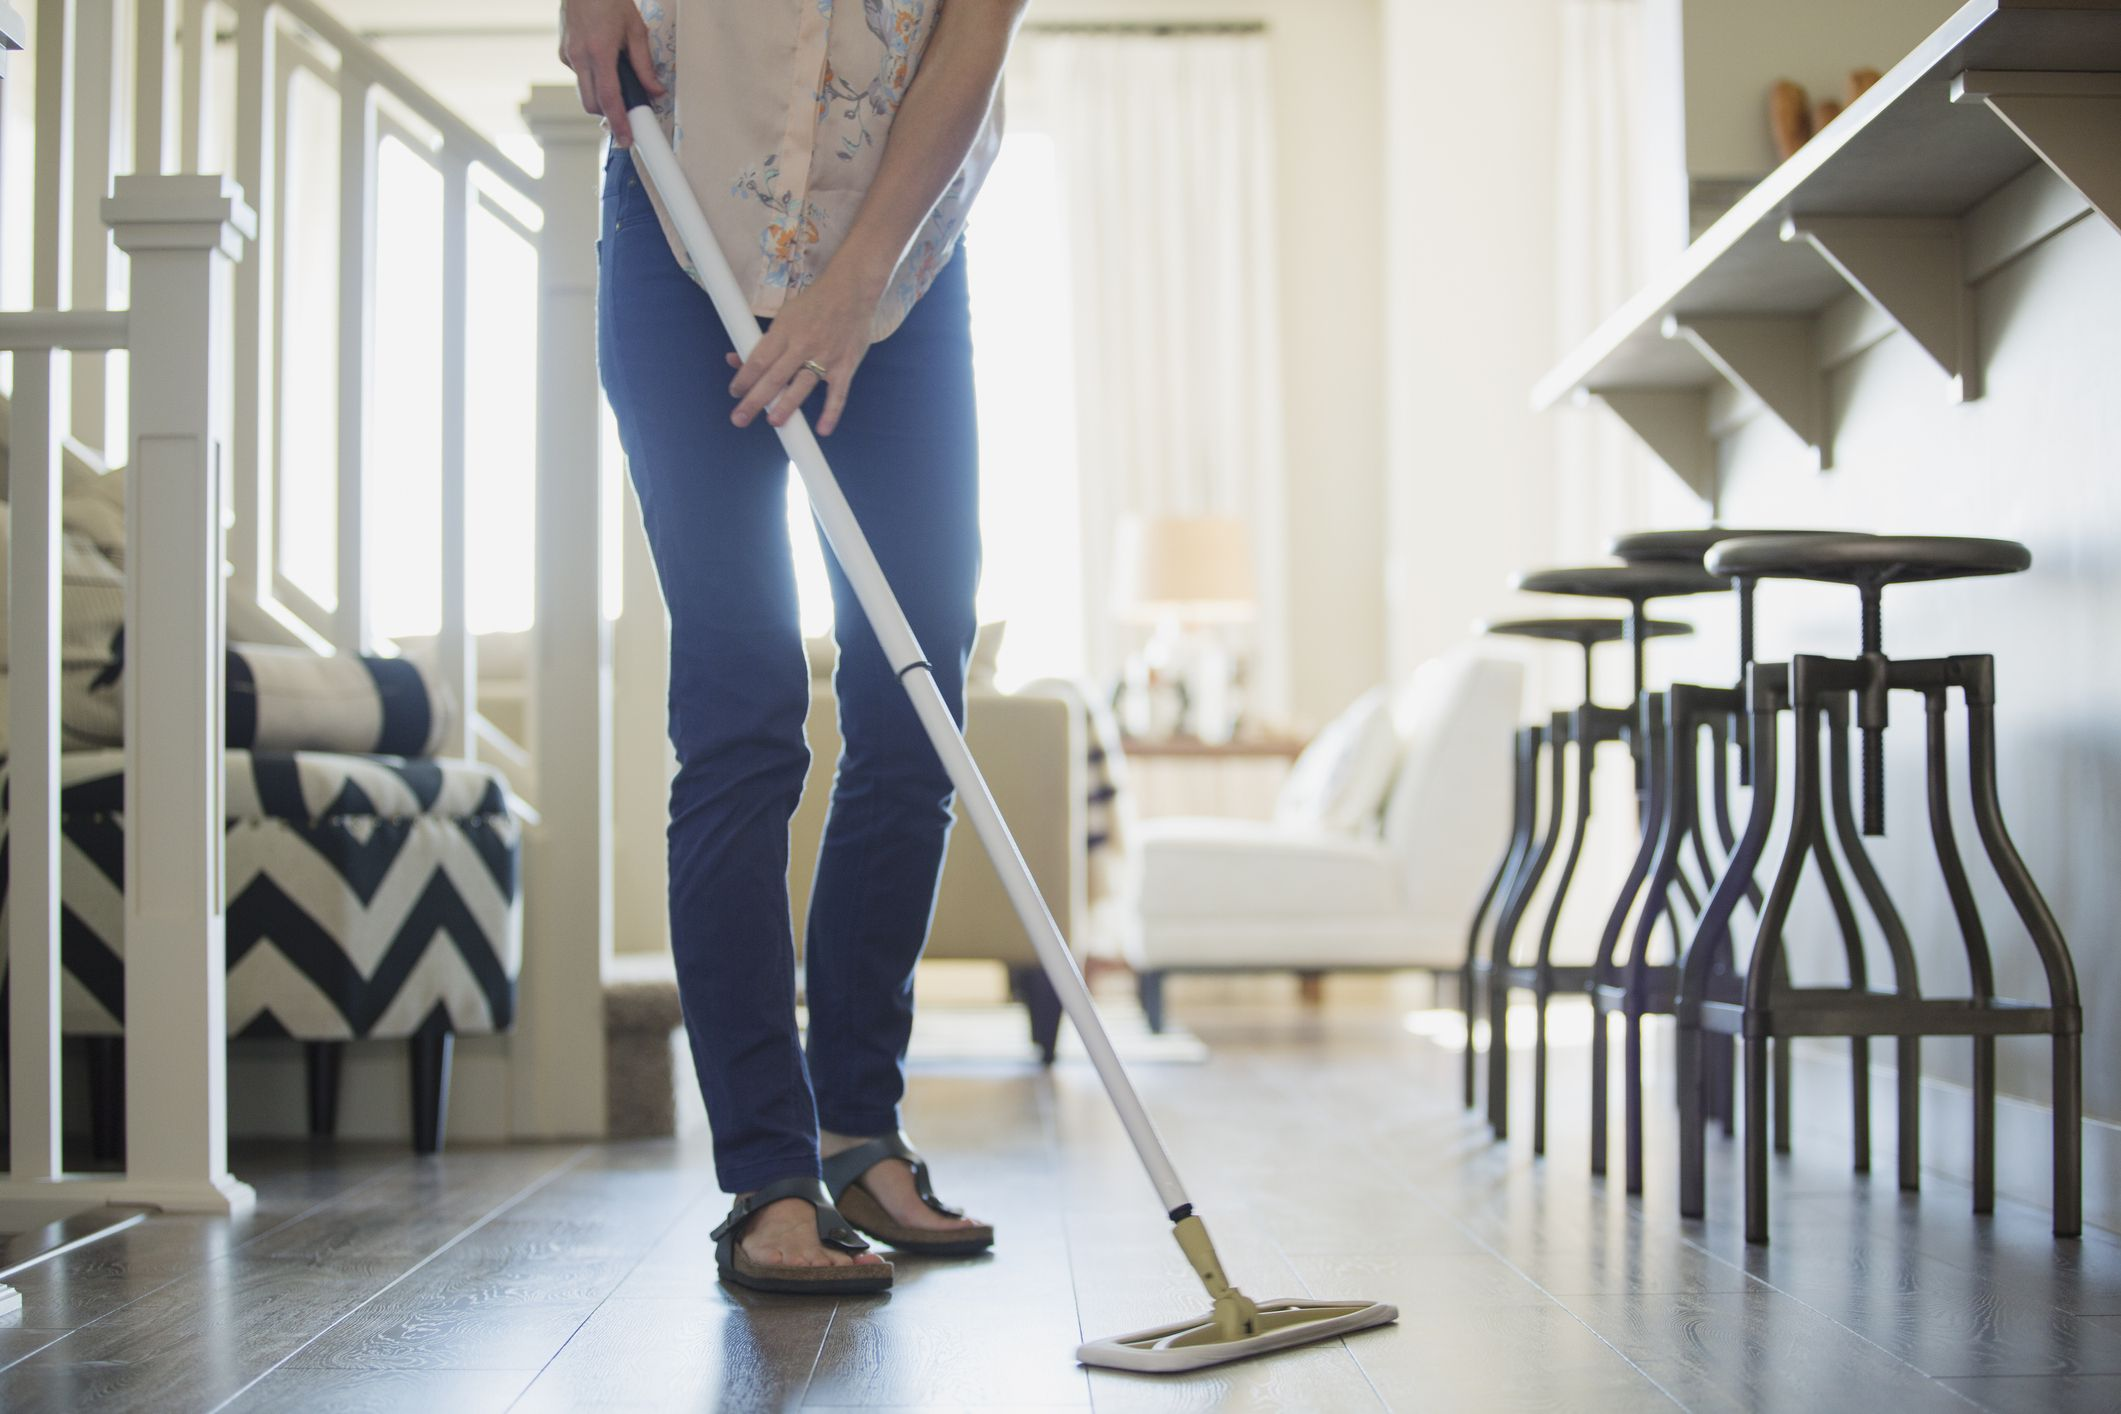 Cleaning Tips For Floors Expert Advice For All Surfaces